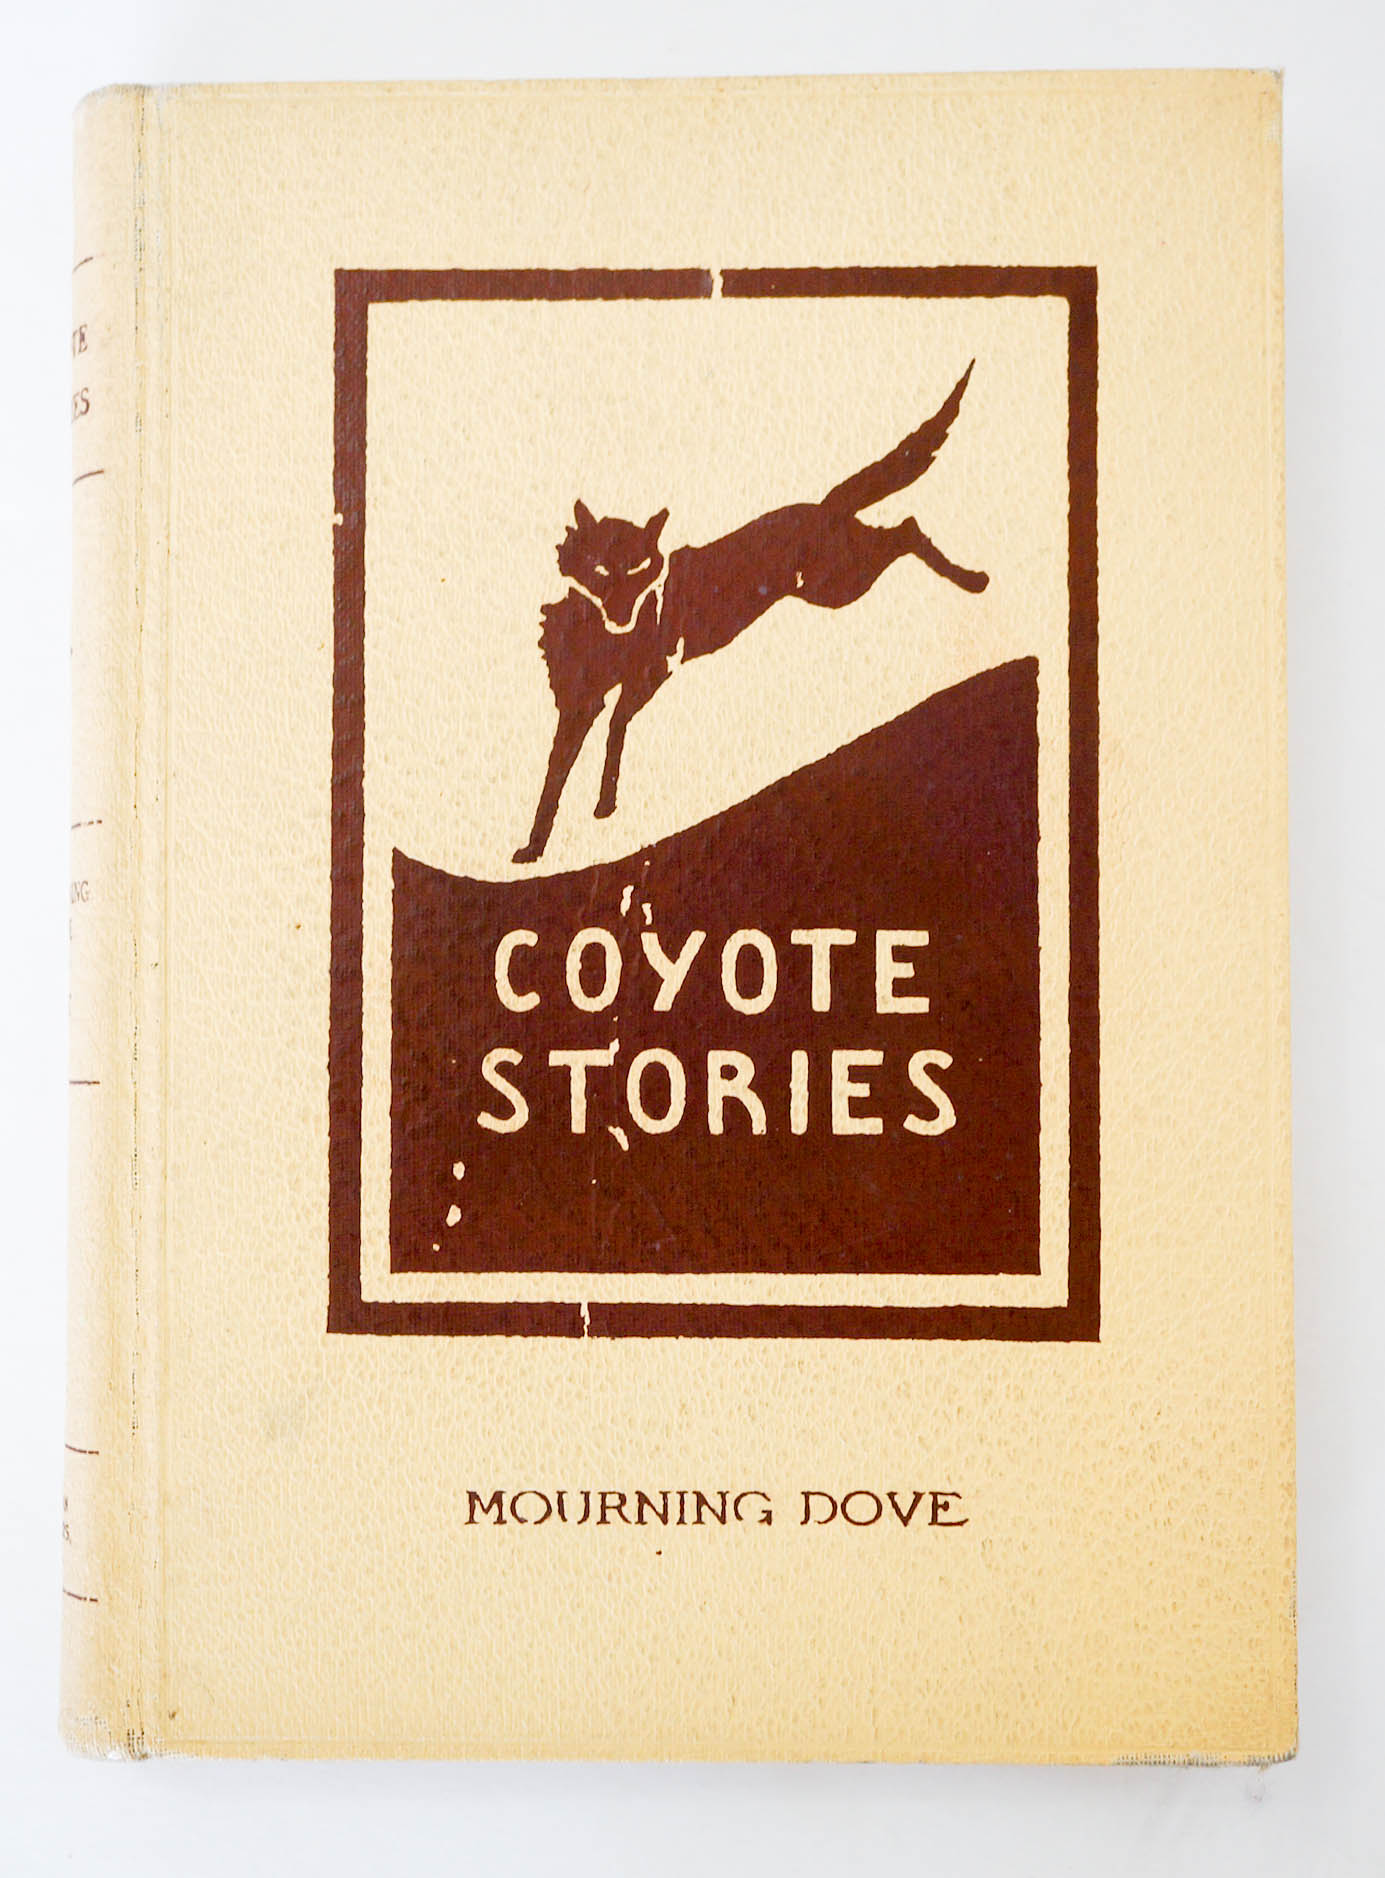 Coyote Stories by Mourning Dove (Hum-Ishu-Ma)